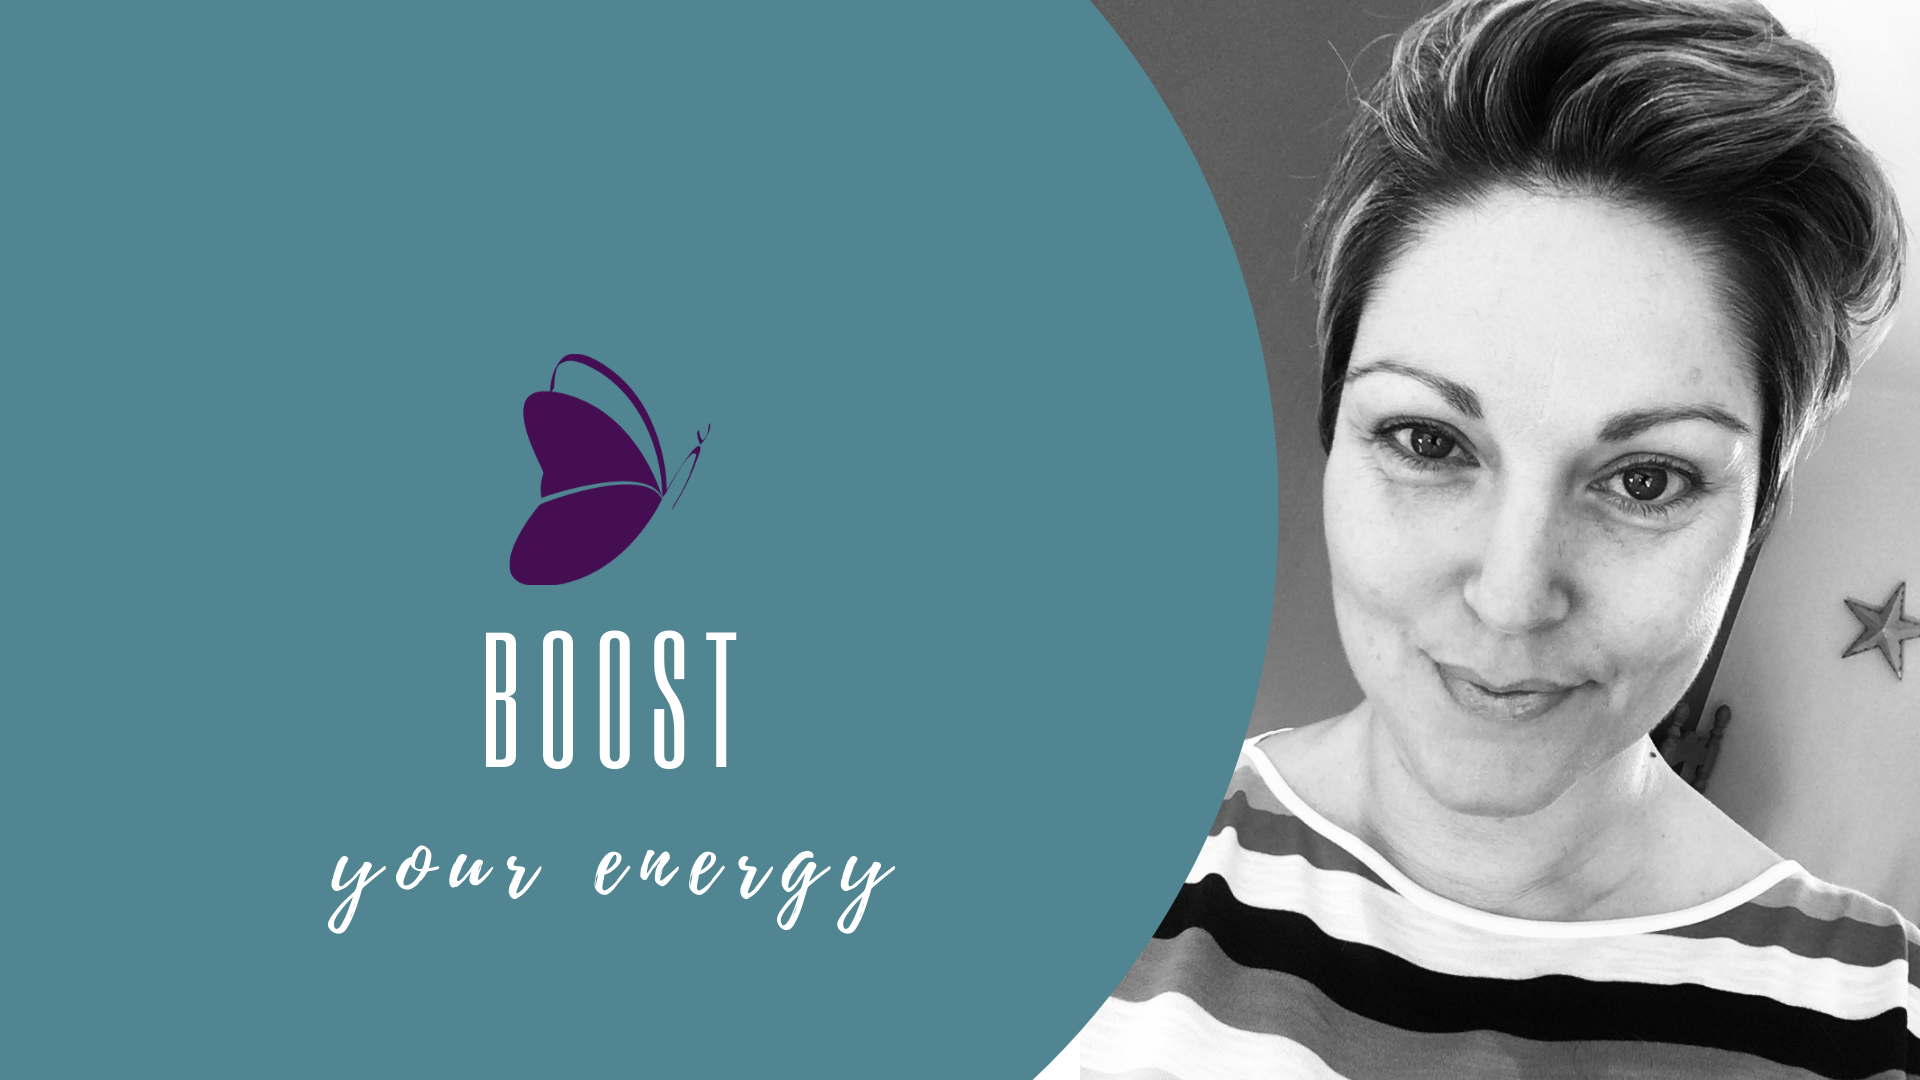 Boost your energy - reiki, learn reiki, energy and wellbeing